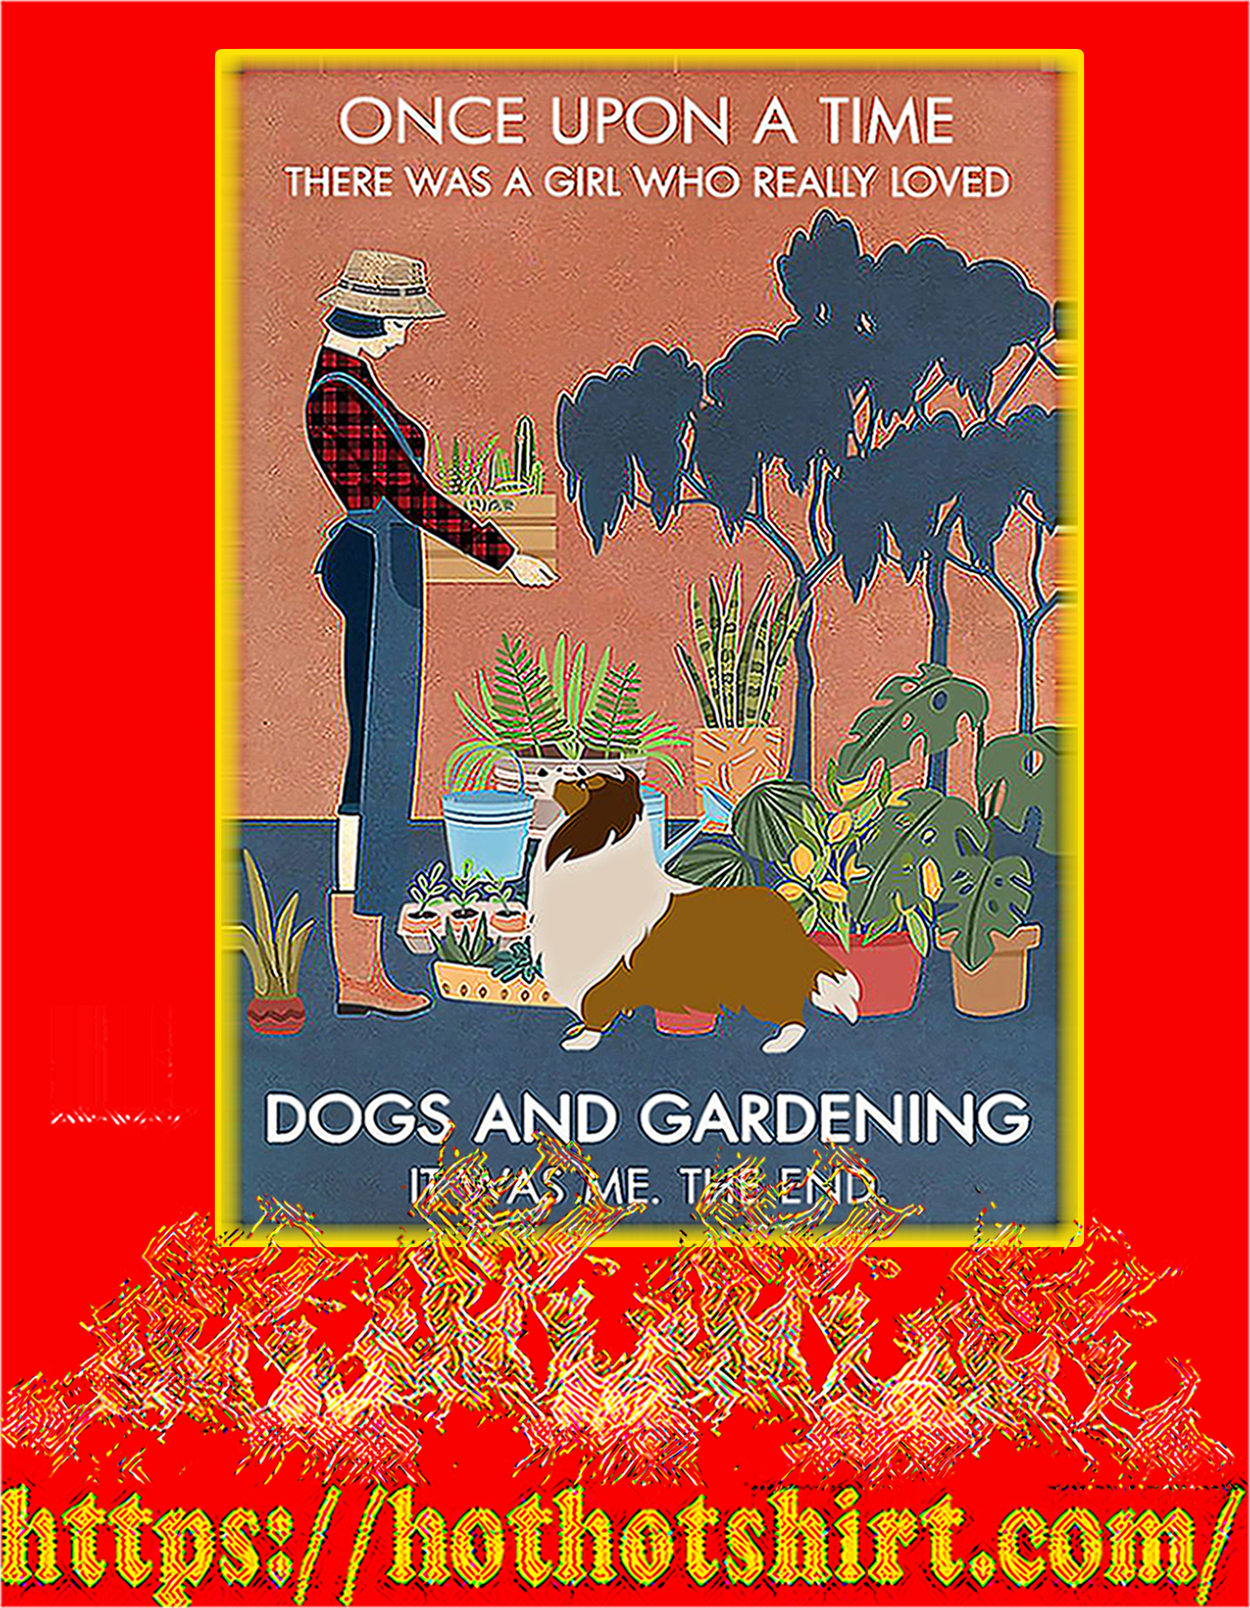 Shetland Sheepdog One upon a time there was a girl loved dogs and gardening poster - A3